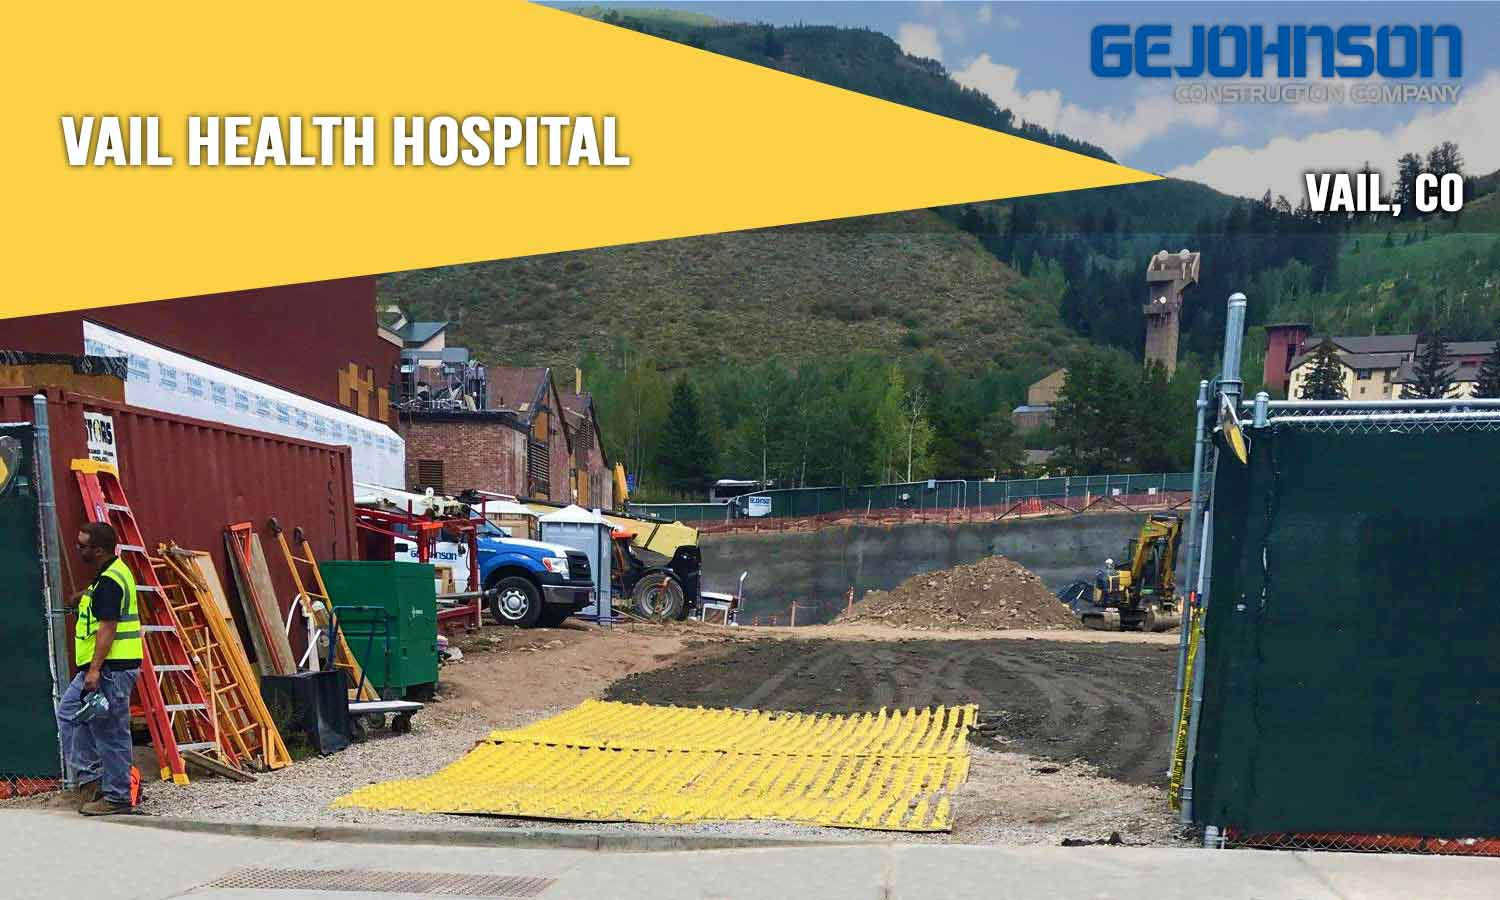 FODS_constructionEntrance_constructionExit_constructionMats_WheelWashHire_rumblePlates_constructionDirtMats_mudmats_vail_GEJohnson.jpg